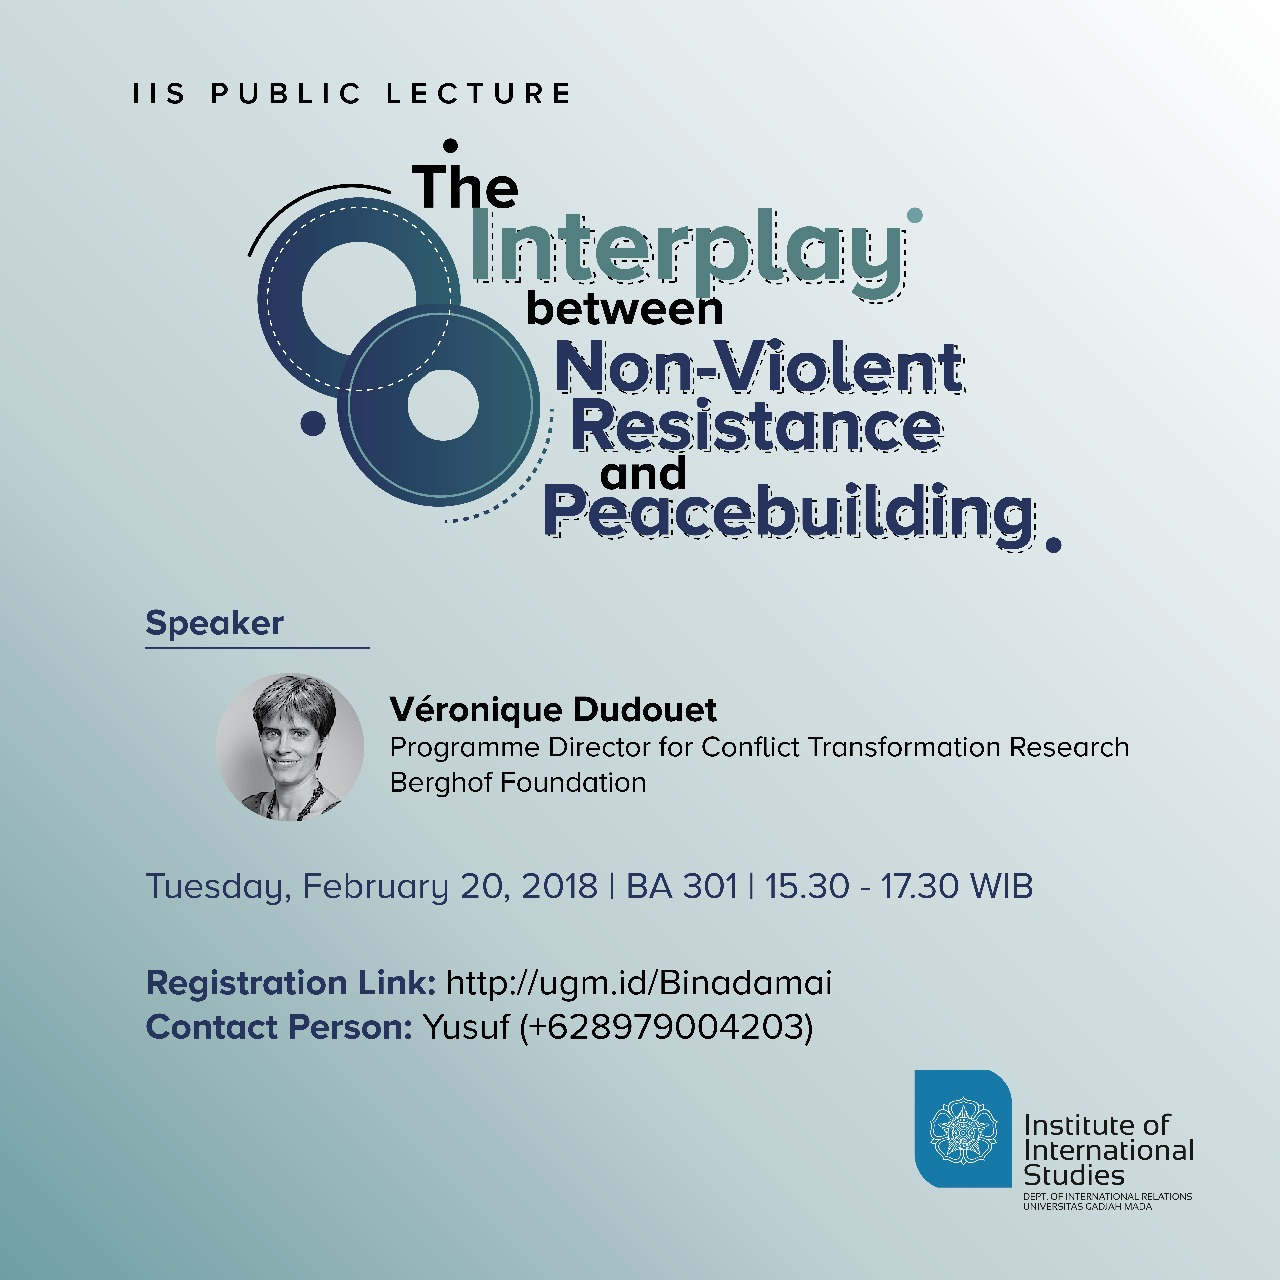 [PUBLIC LECTURE] The Interplay Between Non-Violent Resistance and Peacebuilding